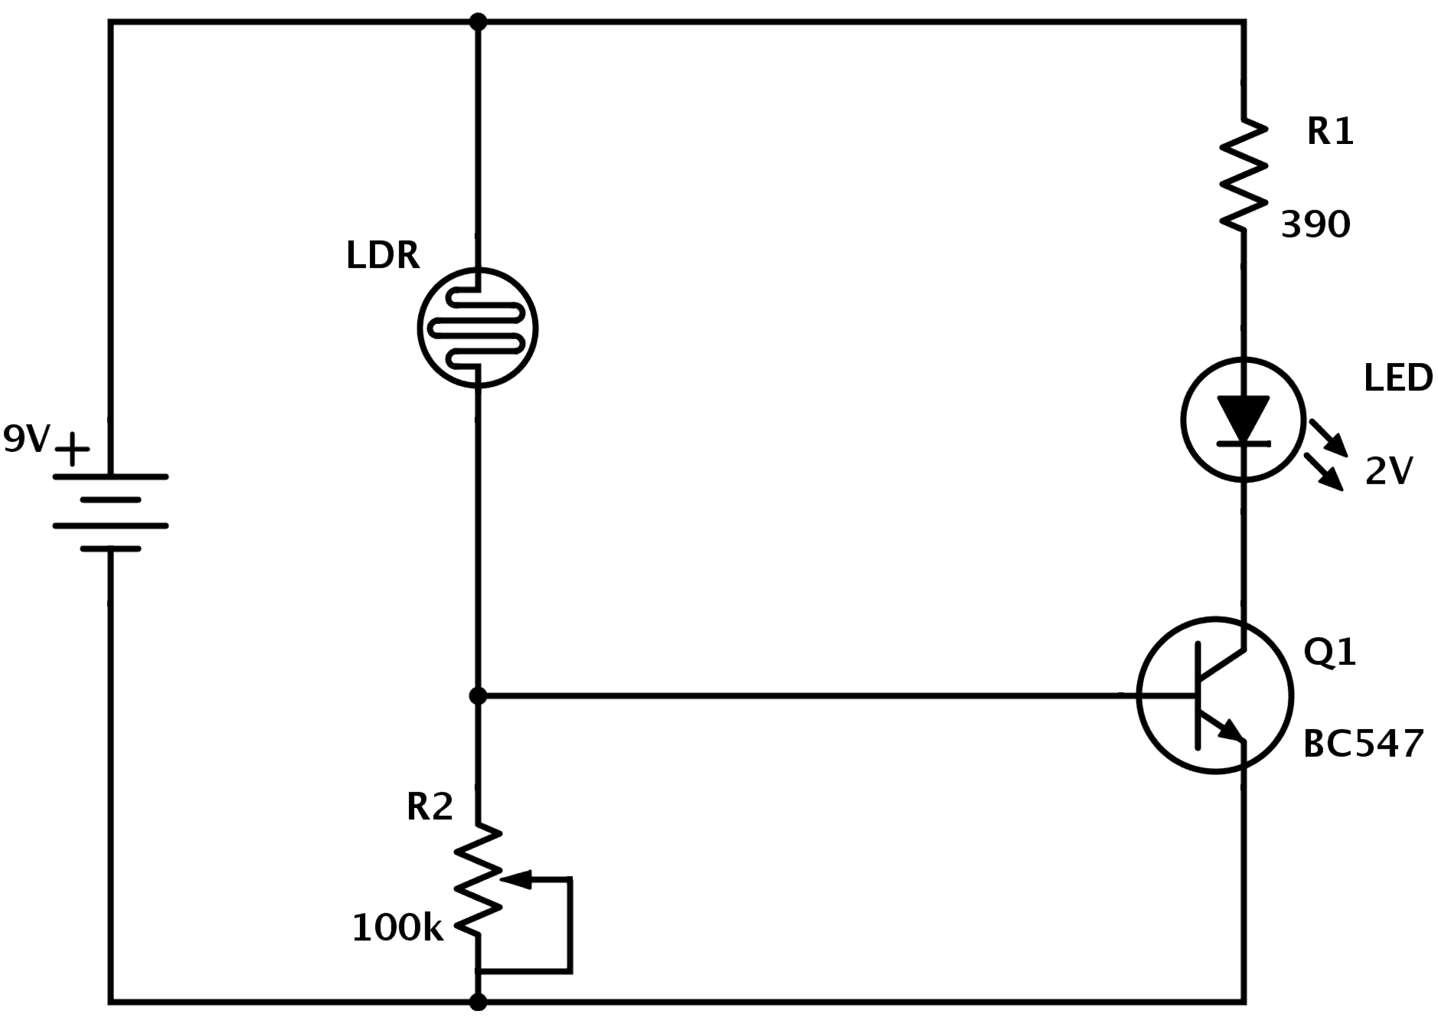 hight resolution of basic wire diagrams wiring diagram given circuit schematic o electronics newbies o electronics forumldr circuit diagram